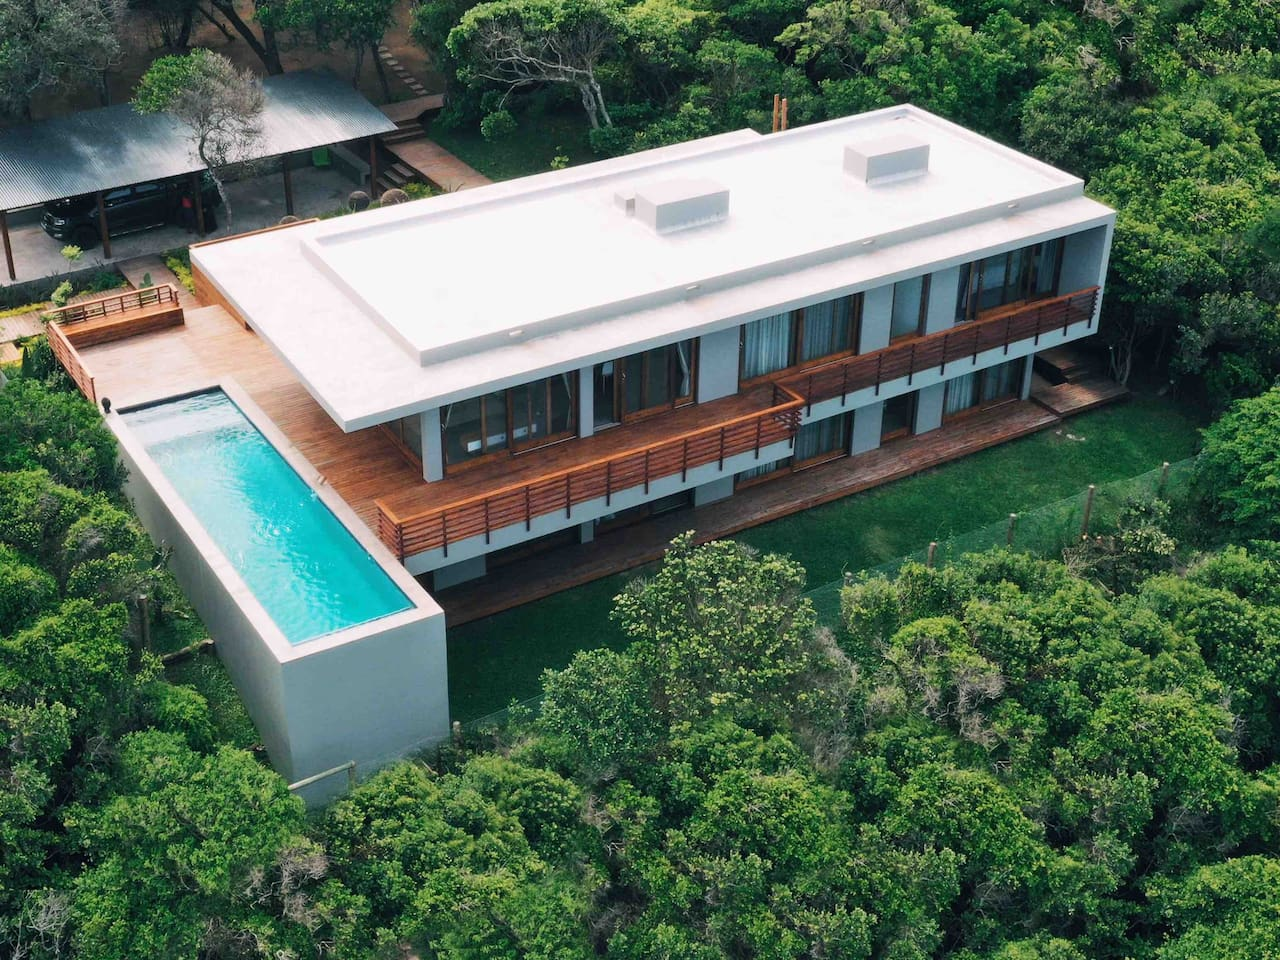 A modern architecture beach luxury house. Right on the beach front of Mozambique Ponta do Ouro Marine reserve. NEW DECK WALKWAY WITH DIRECT ACCESS TO THE BEACH